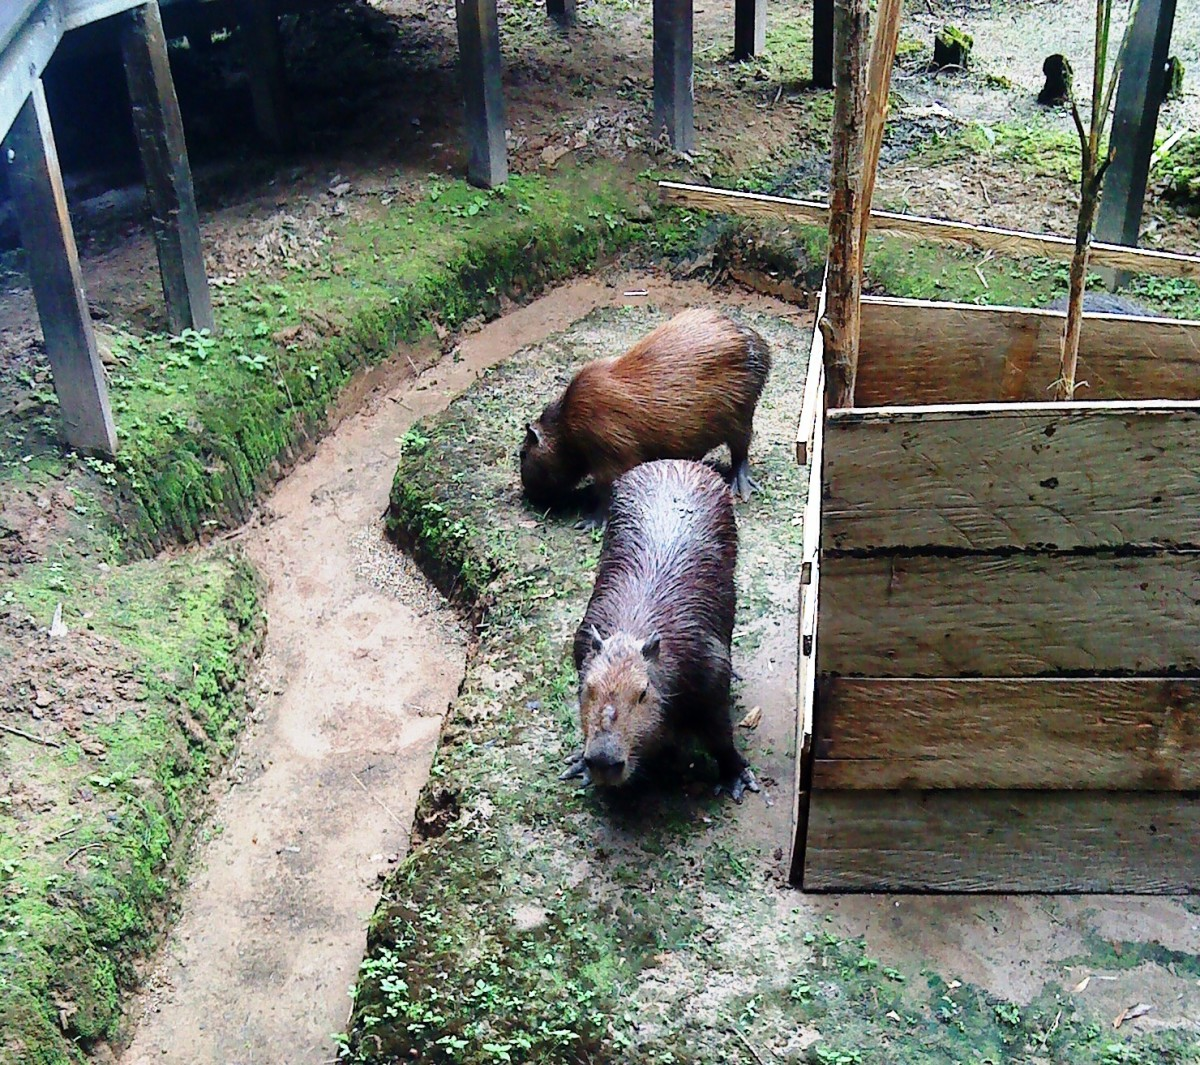 Capybara, the world's largest rodent.